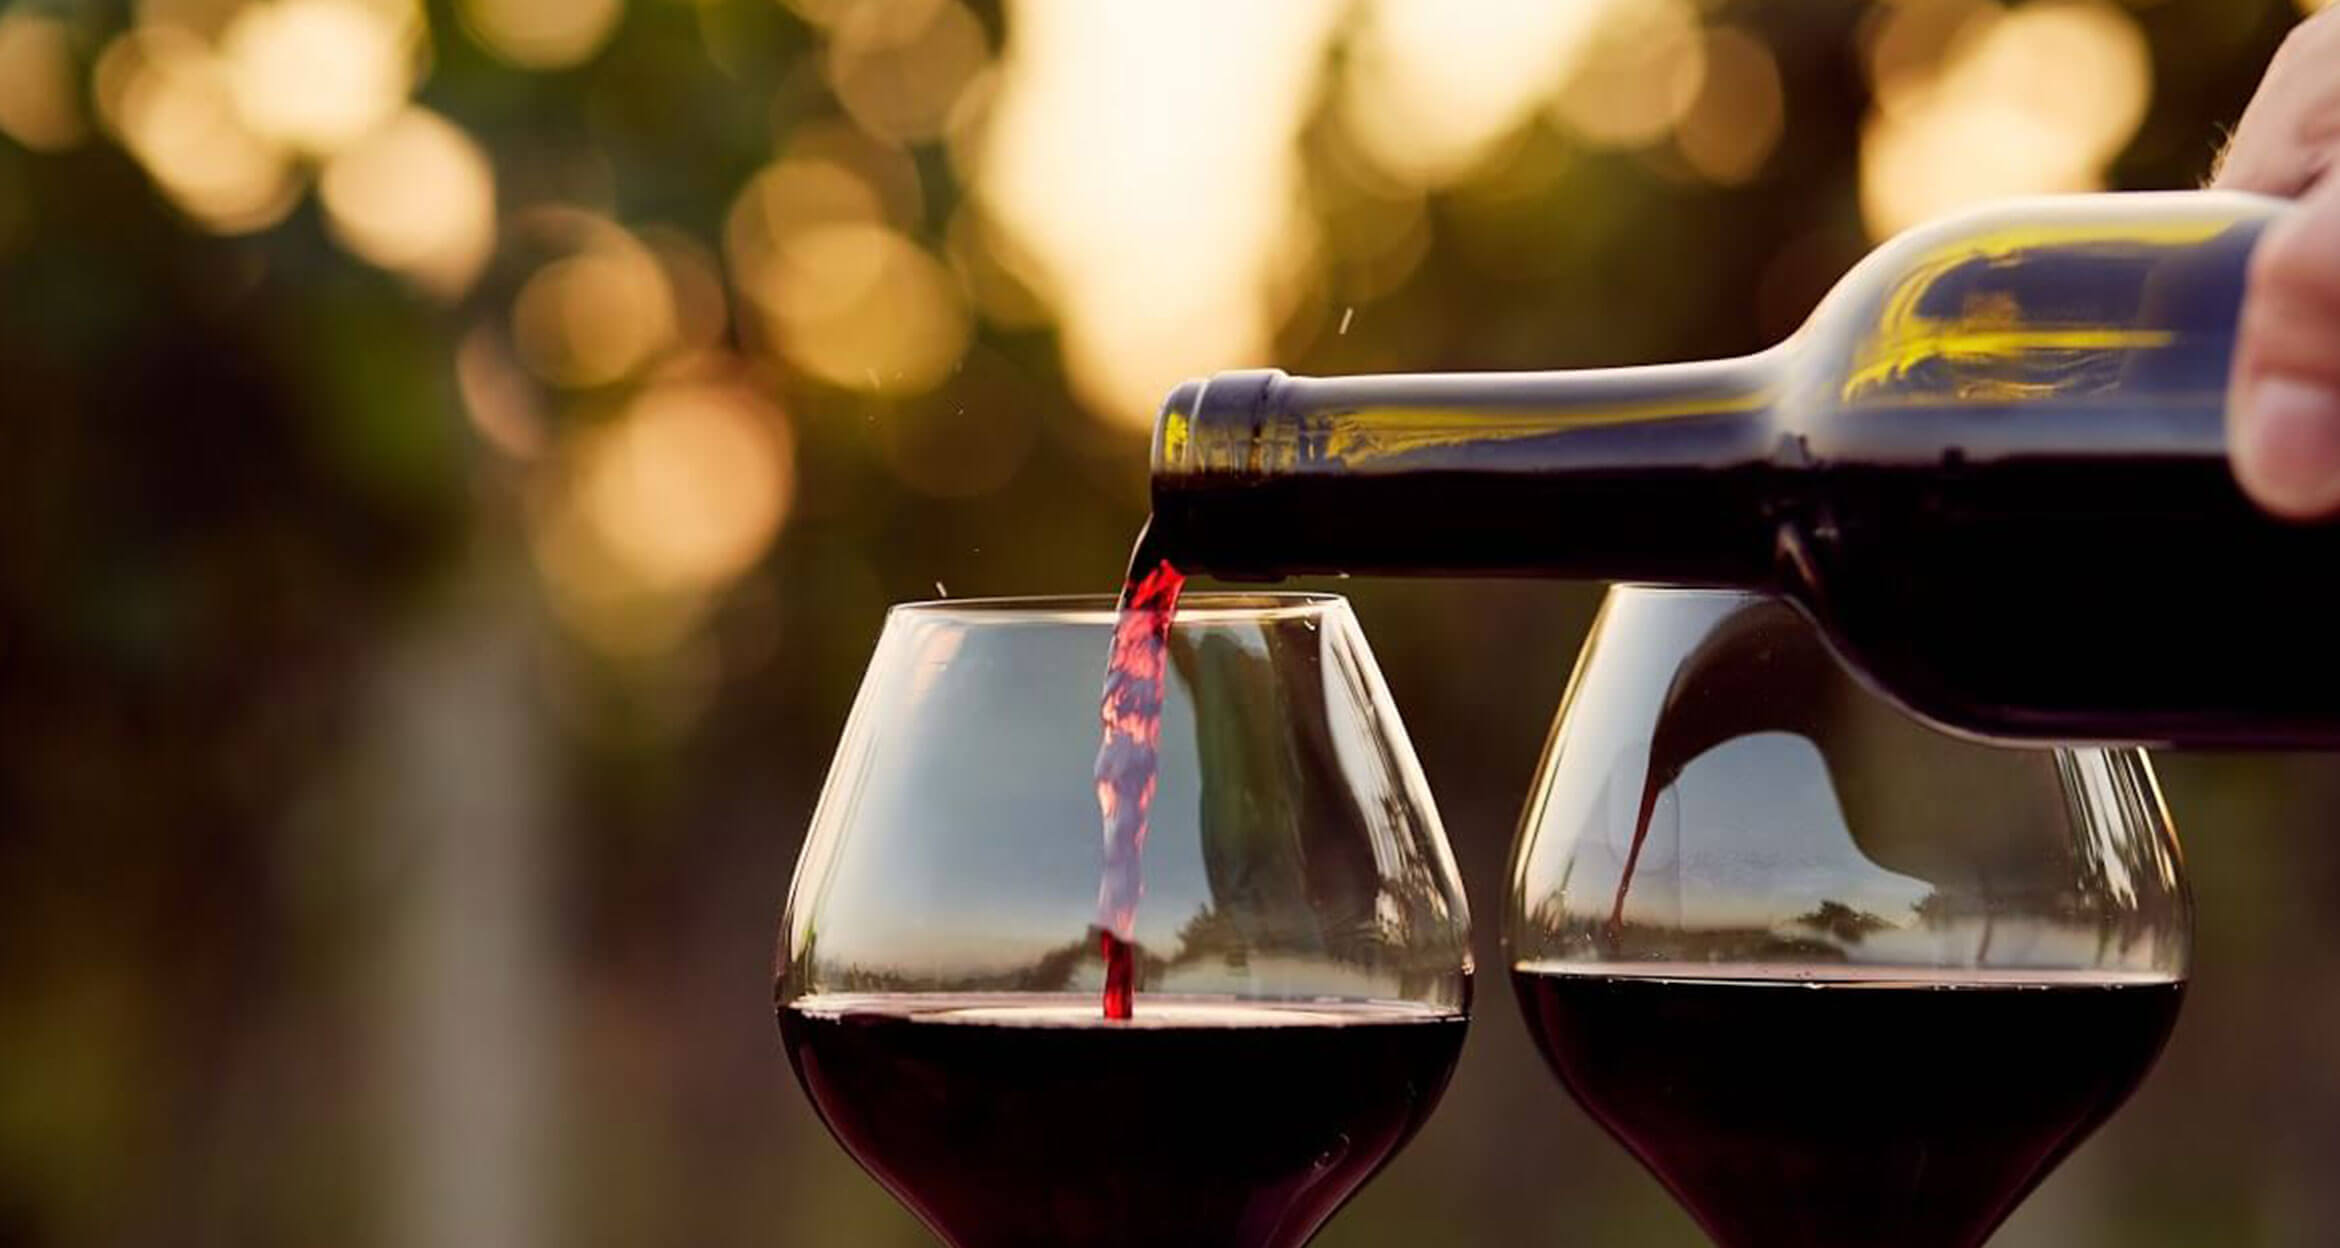 man pouring two wine glasses with red wine